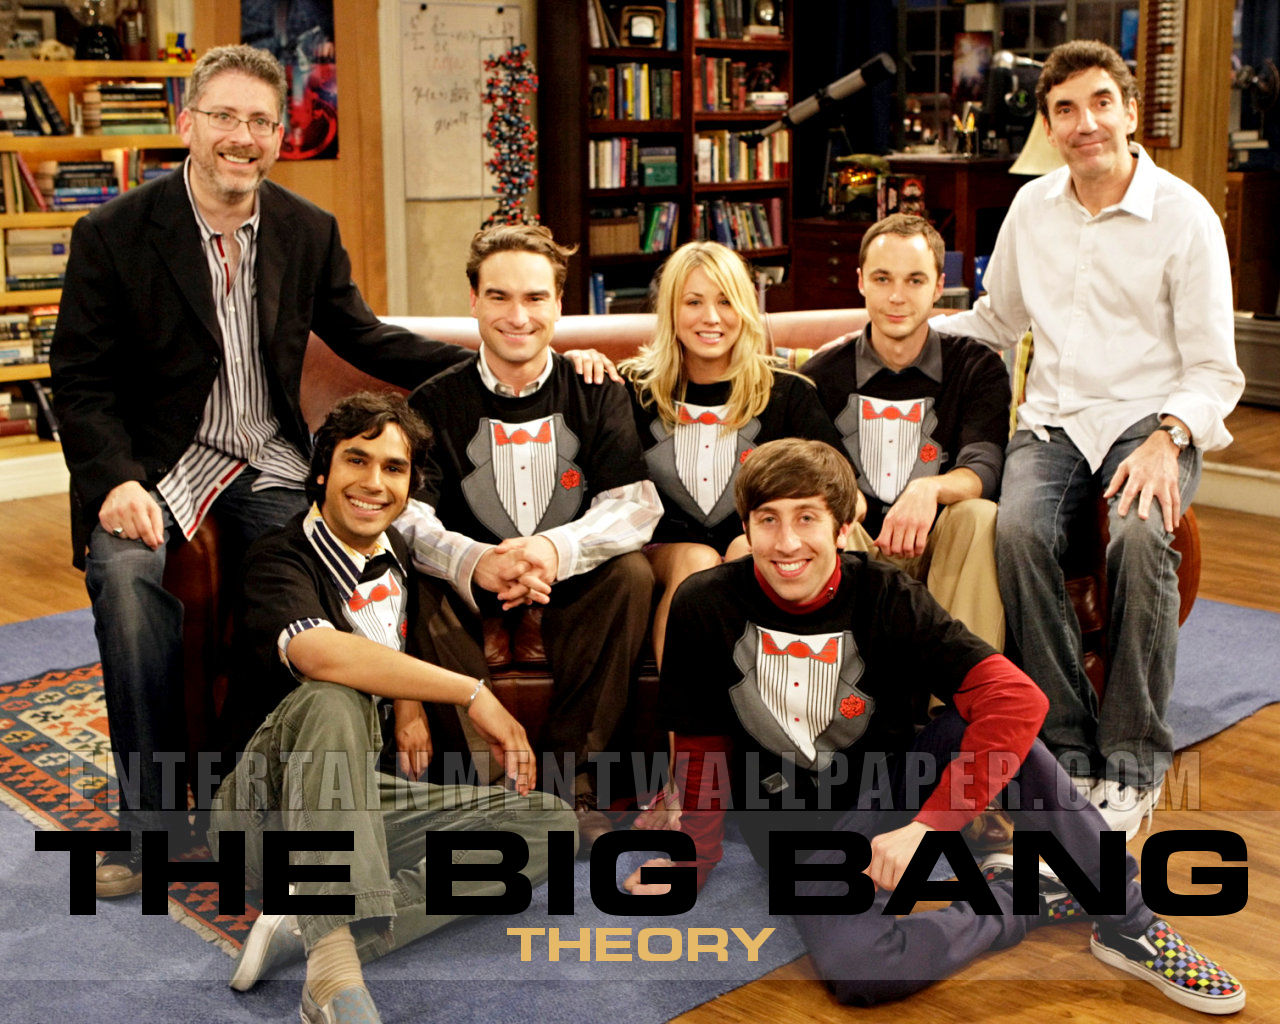 http://3.bp.blogspot.com/_E26Ndy_oKVc/TVBMe8acQbI/AAAAAAAABOc/NGCl7k7EKyg/s1600/tv_the_big_bang_theory02.jpg